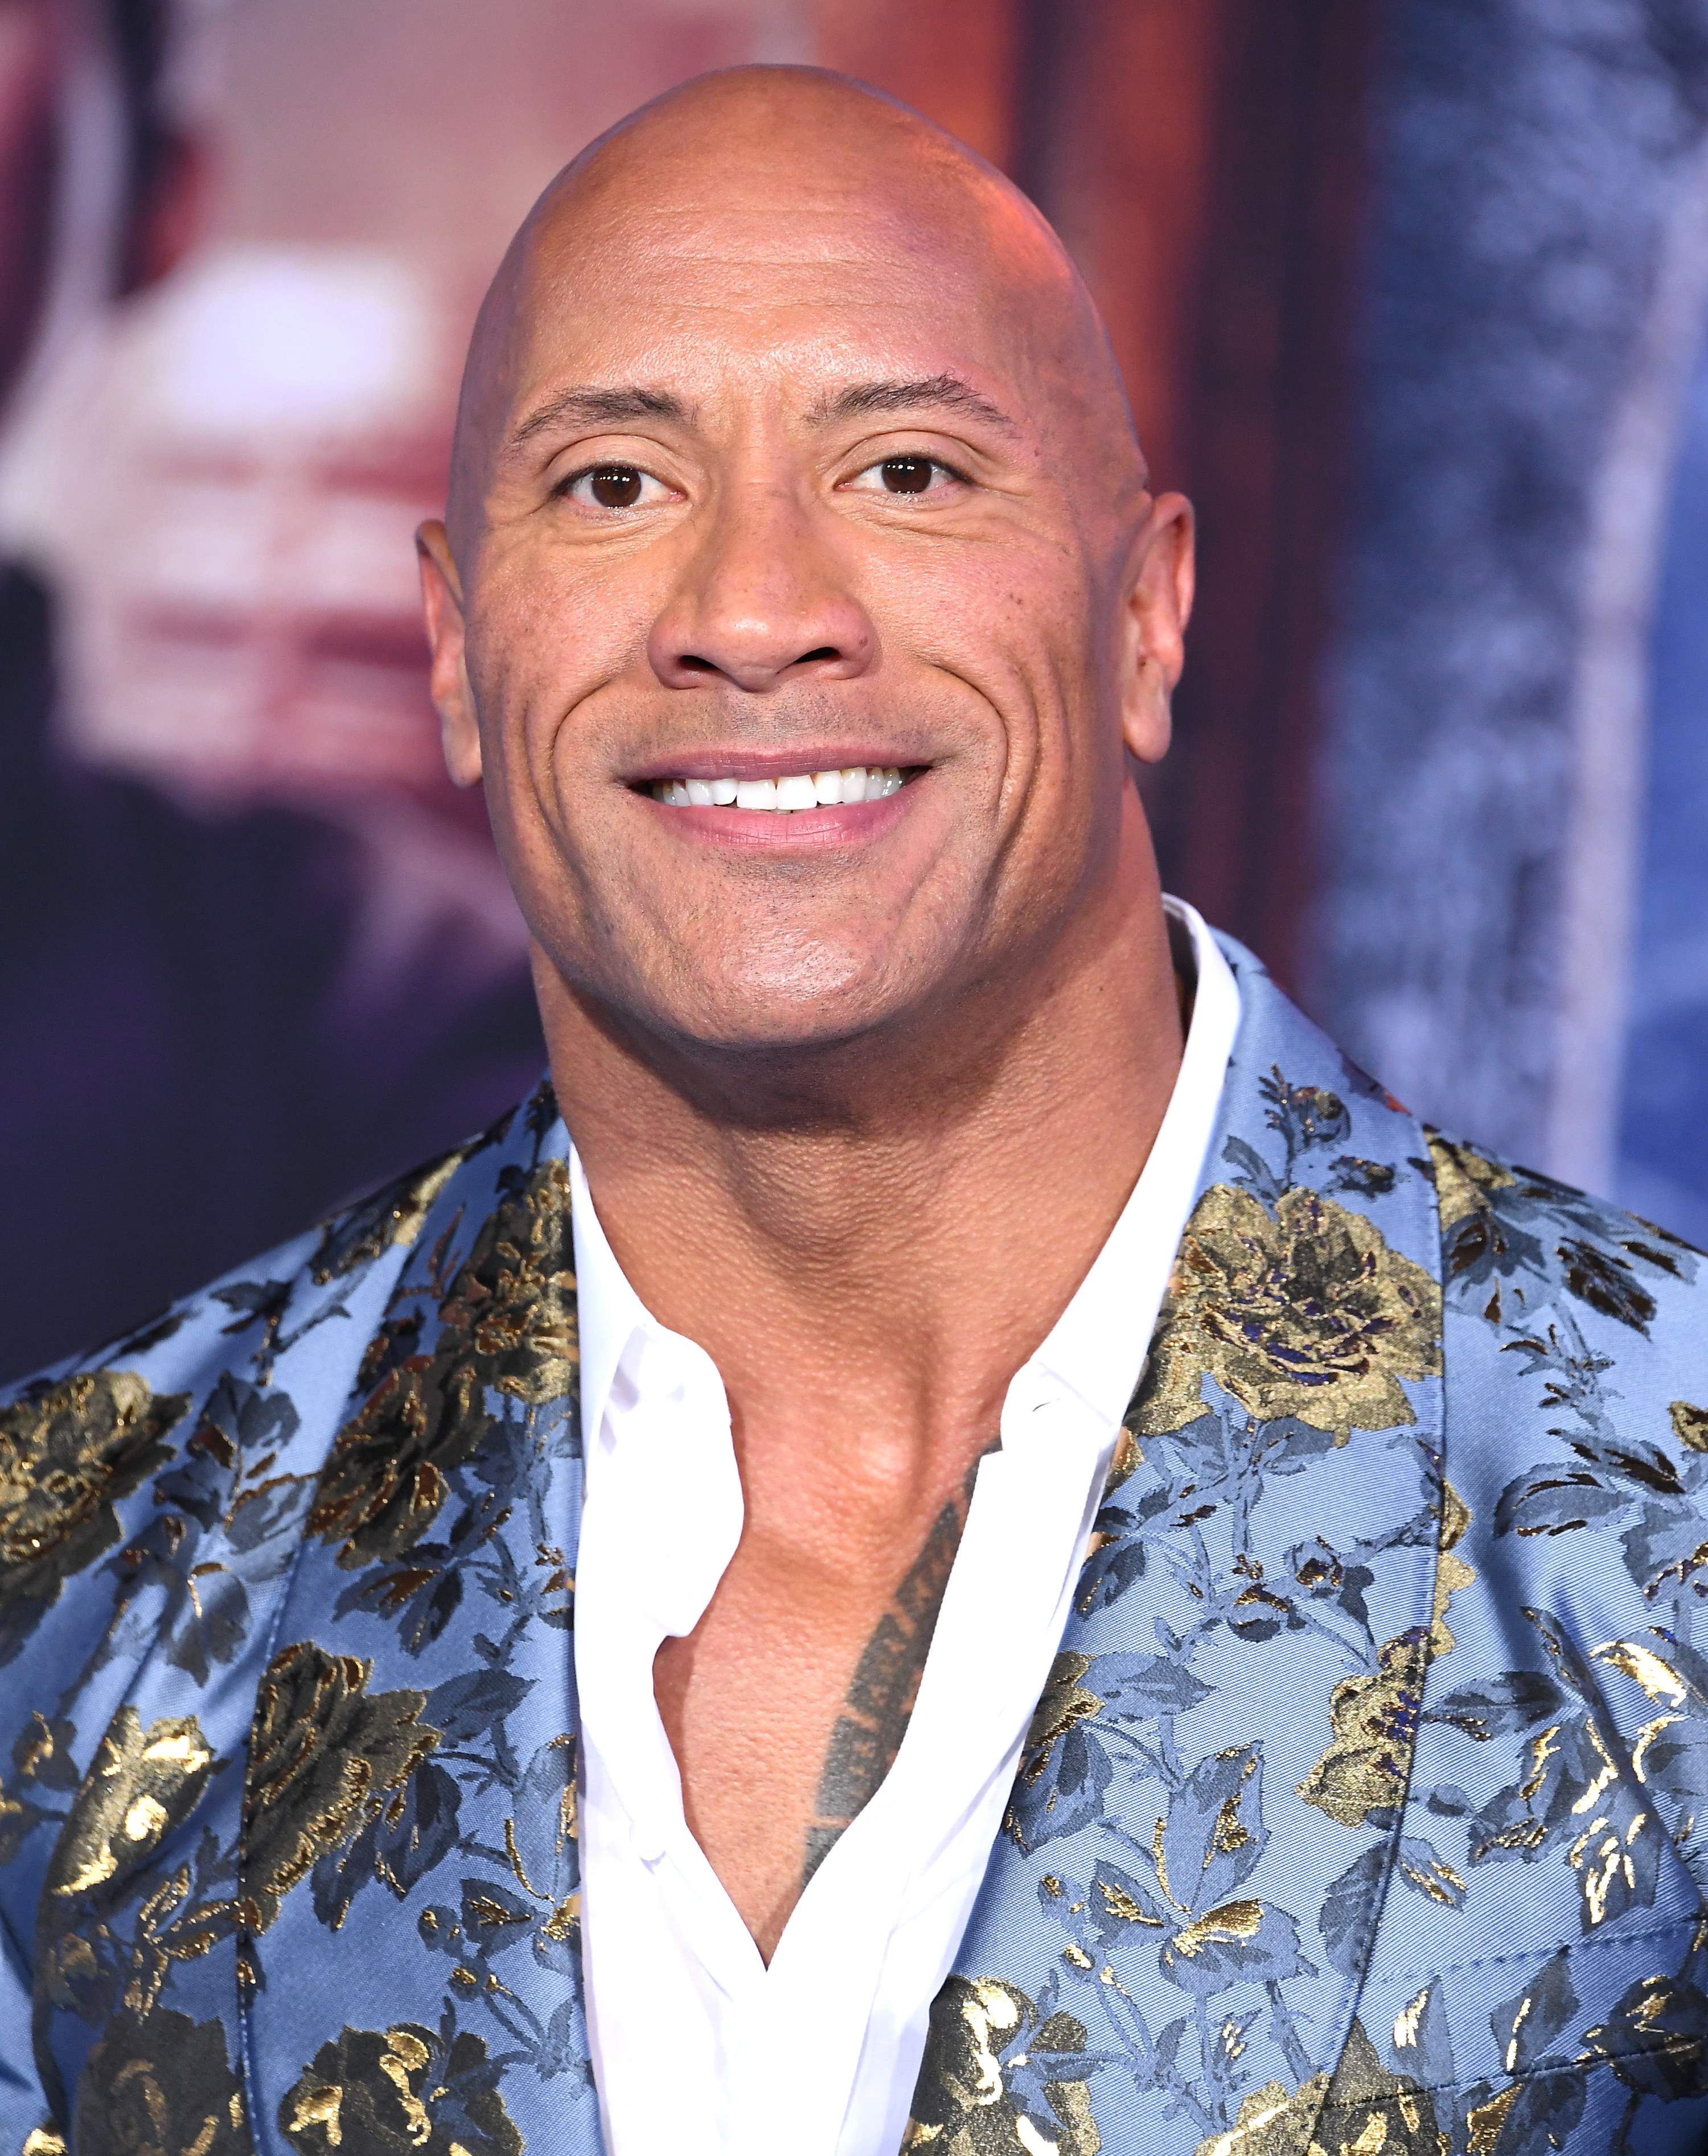 The Rock smiling as he wears a blue suit jacket with gold roses on it